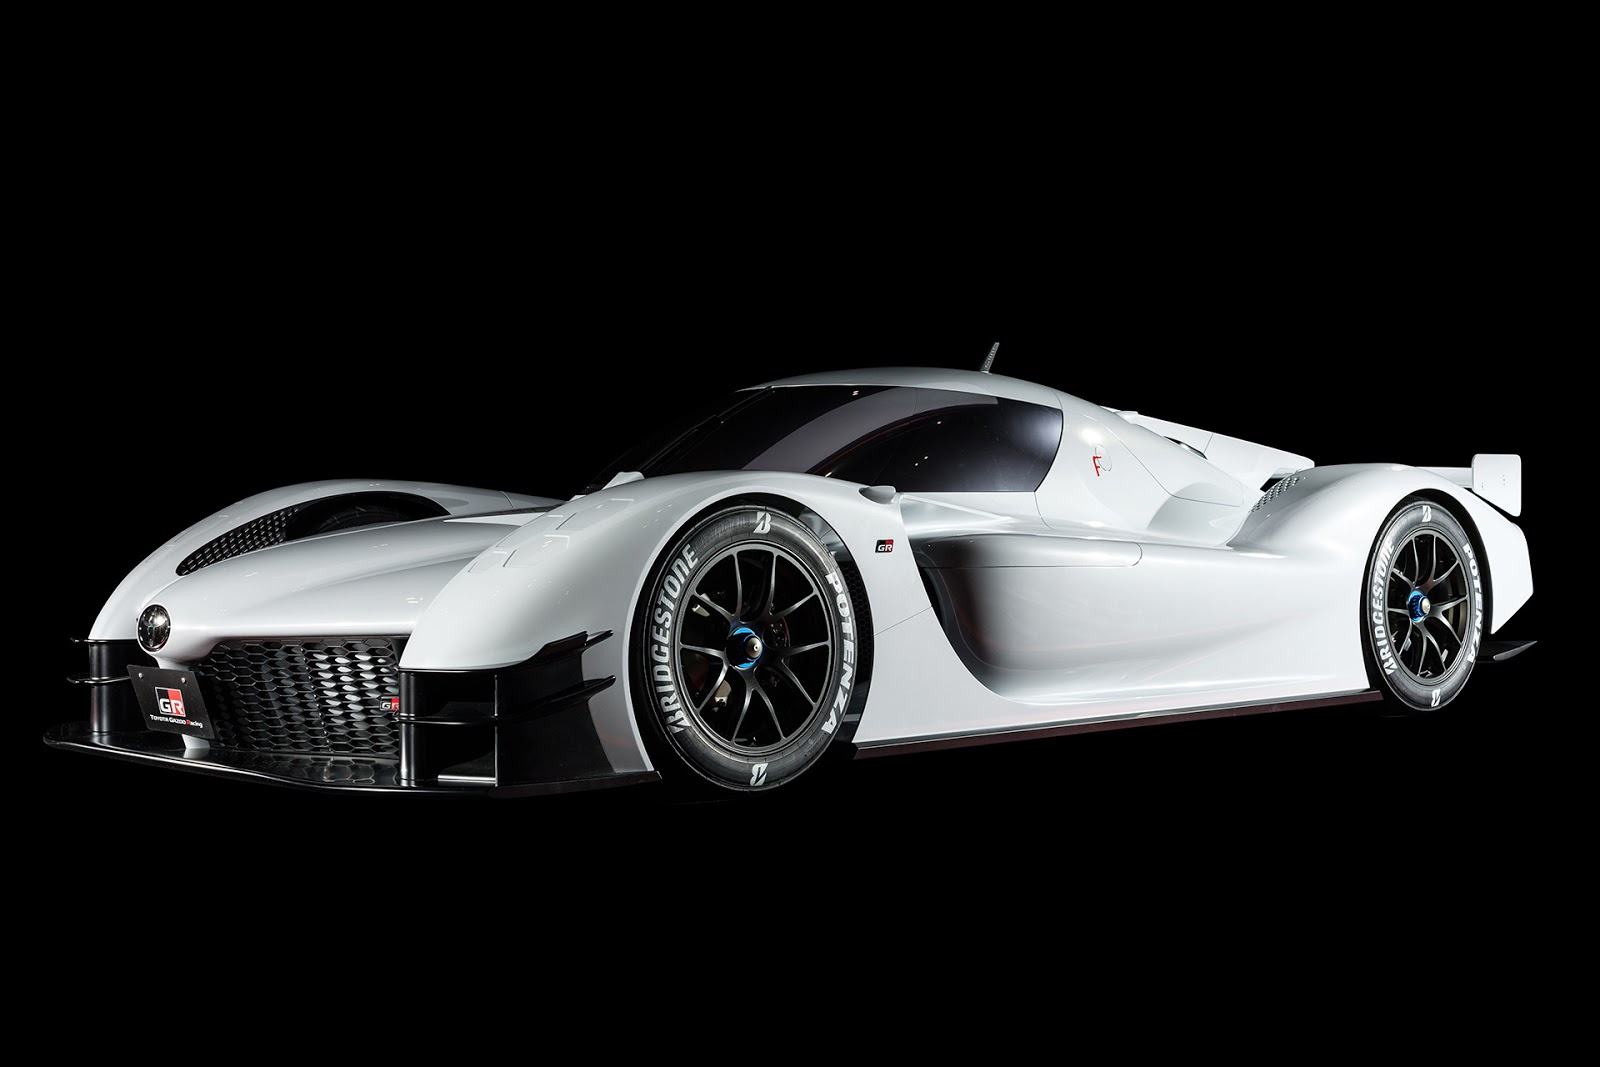 1000 horsepower Toyota GR Super Sport Concept unleashed